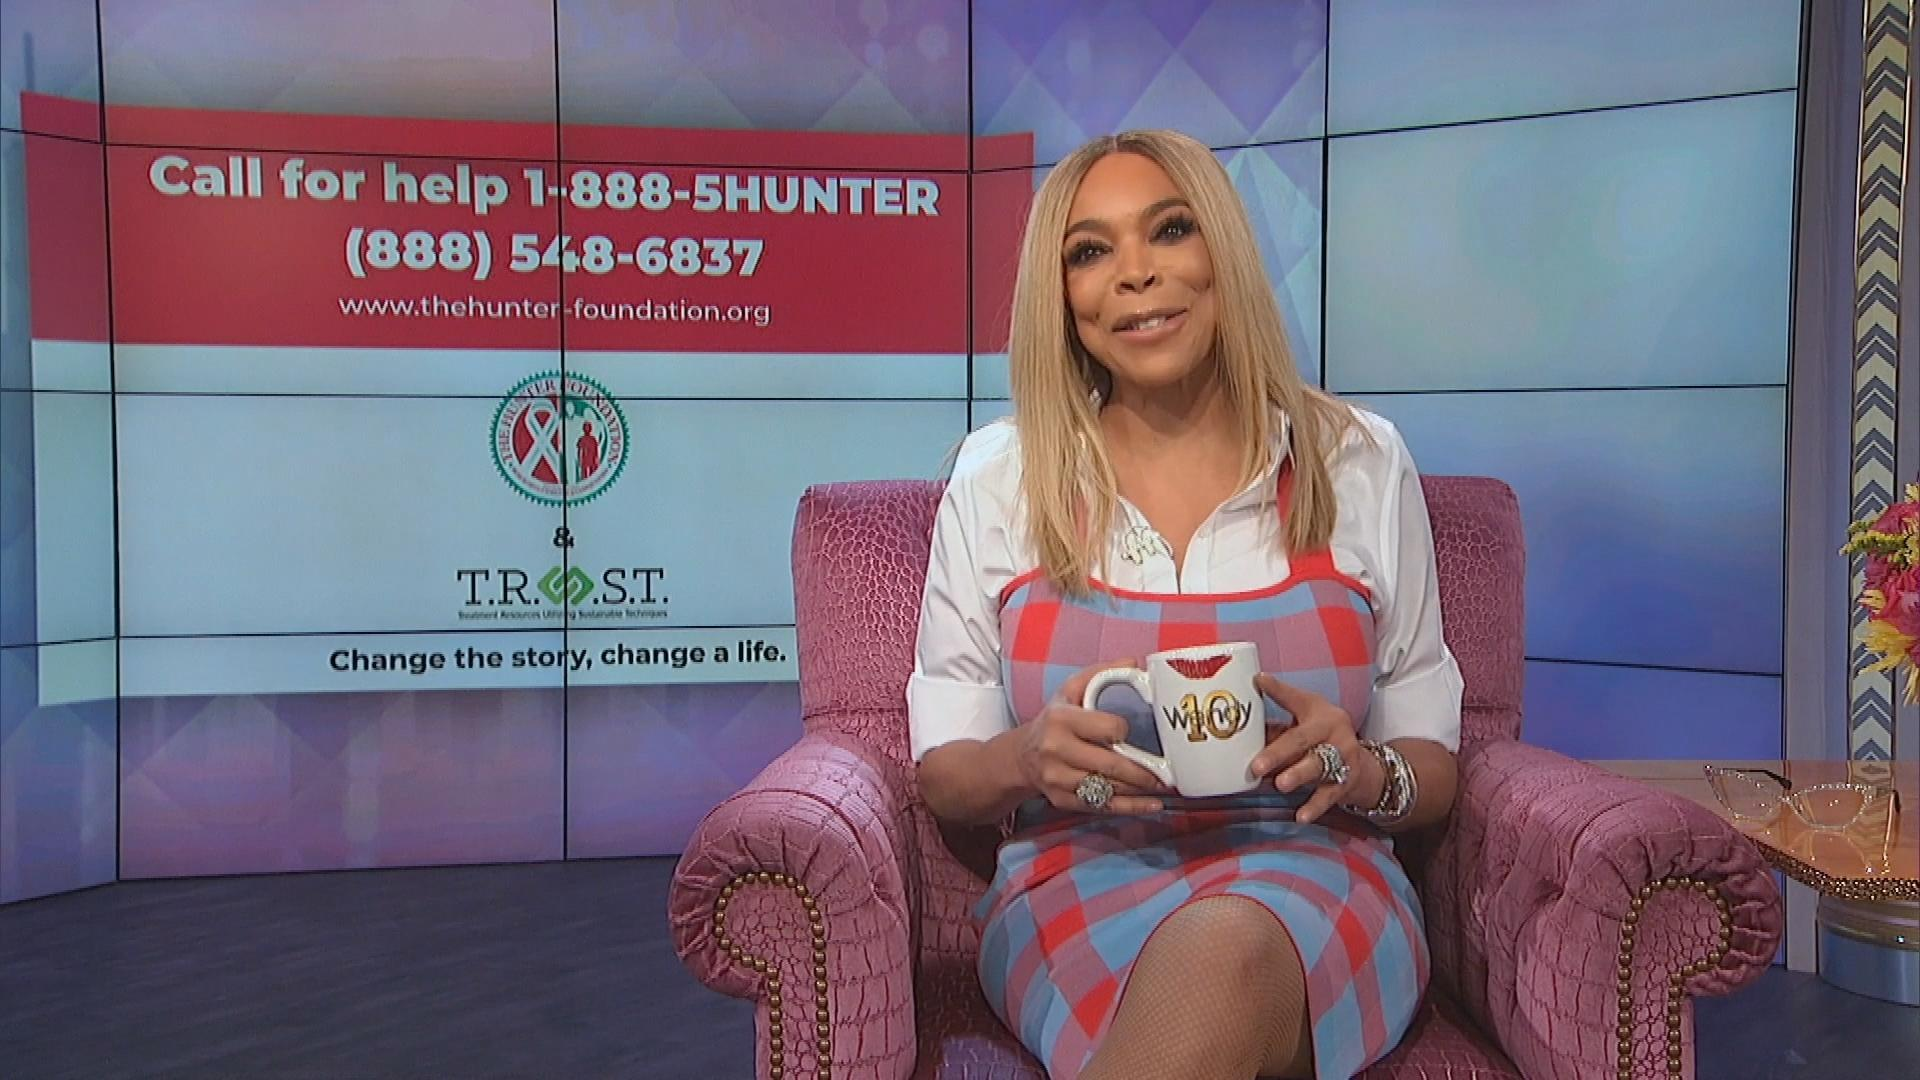 Wendy Williams Claims She's 'Living Proof' That 'There Is Hope' for Addicts and Substance Abusers